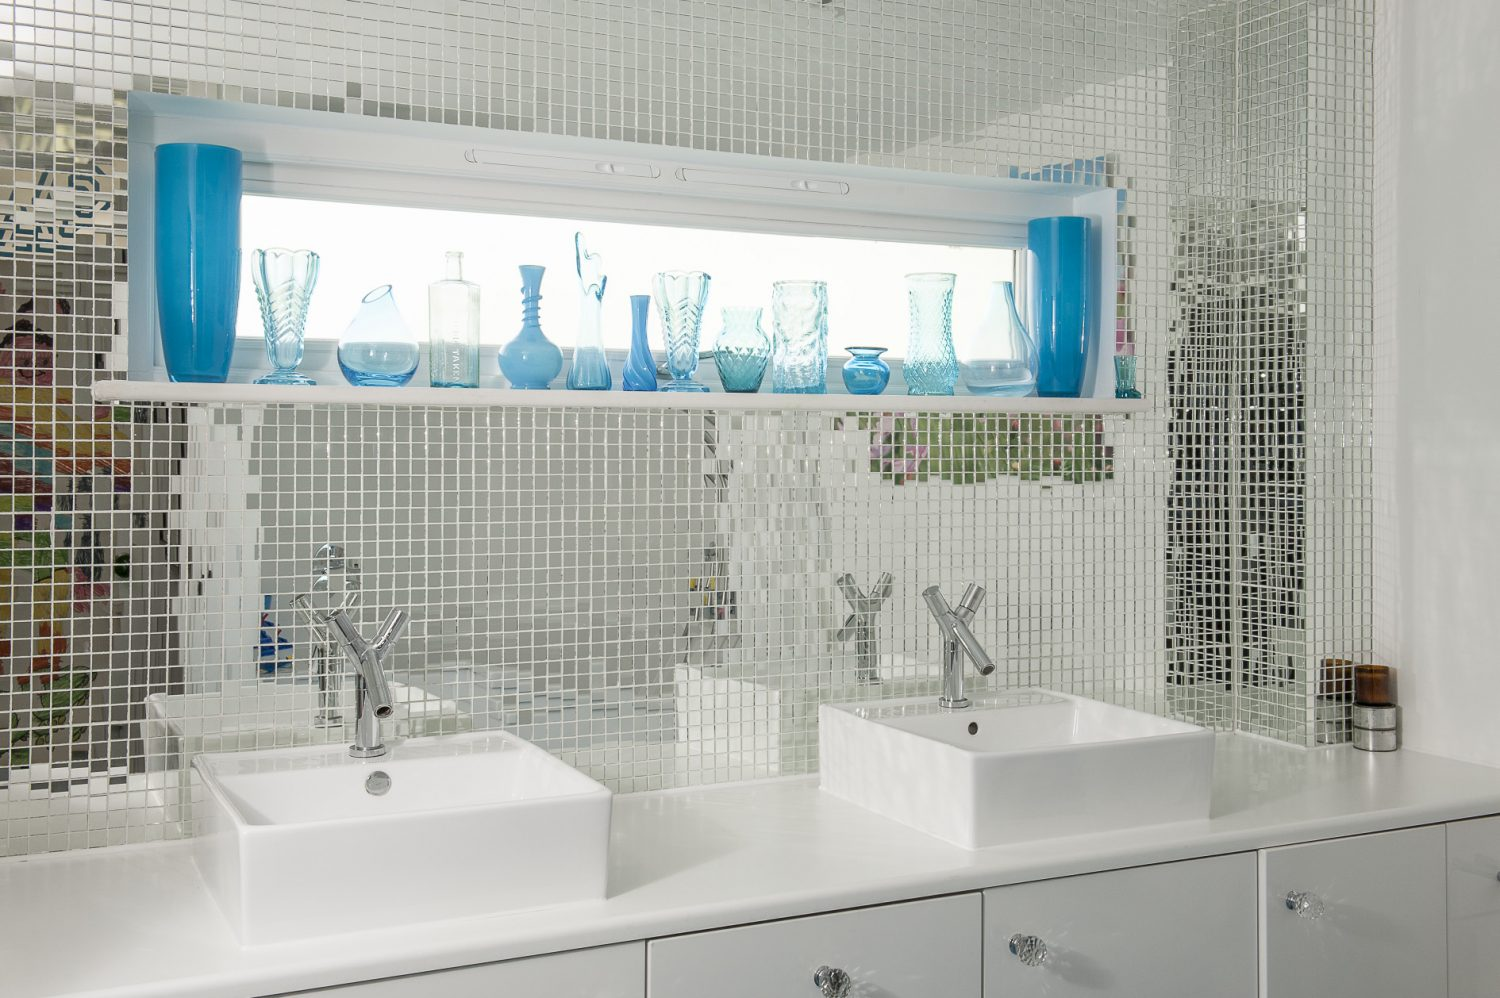 Like the downstairs loo, the rear wall of the family bathroom is tiled with mirrored mosaics